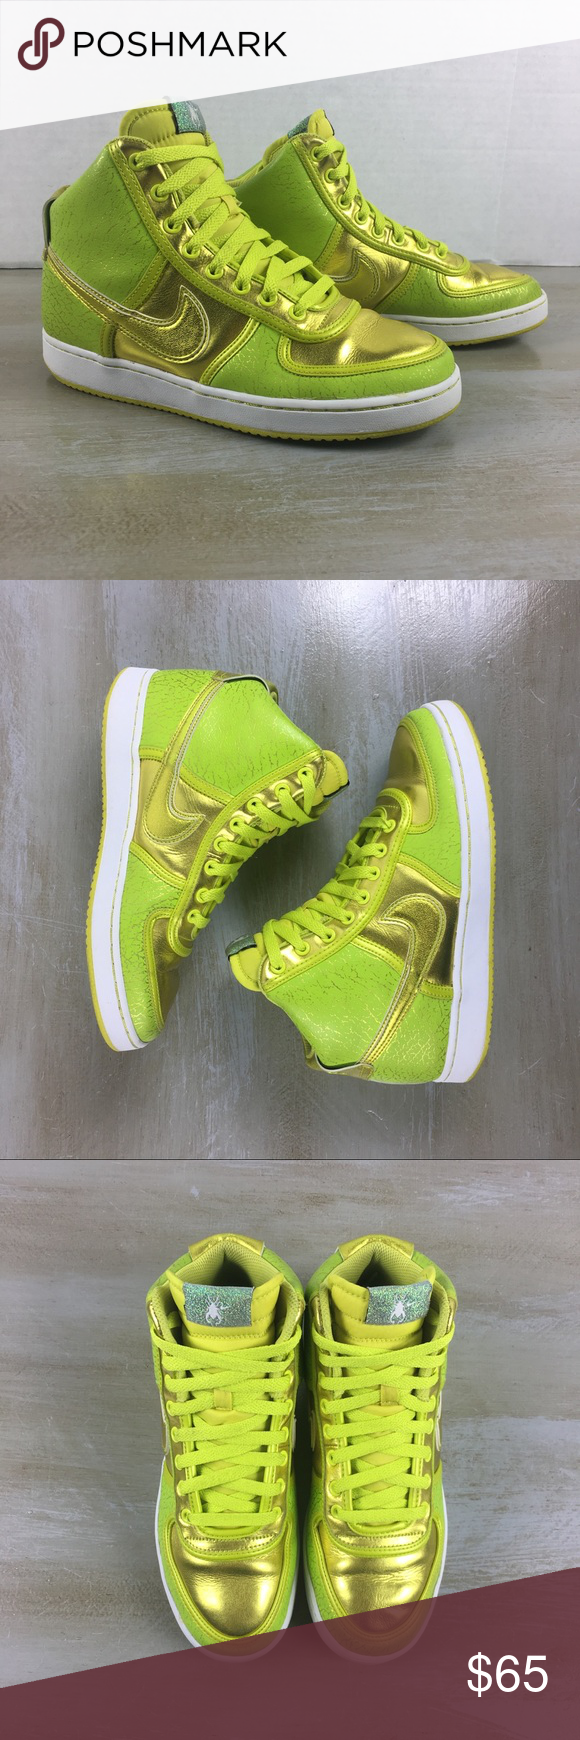 Nike Women s Vandal High Tops Electrolime Sz 8 S4 Neon high tops Scarab  beetle on tongue Good Condition with slight discolor Swoosh bit not  noticeable. 87230938c2